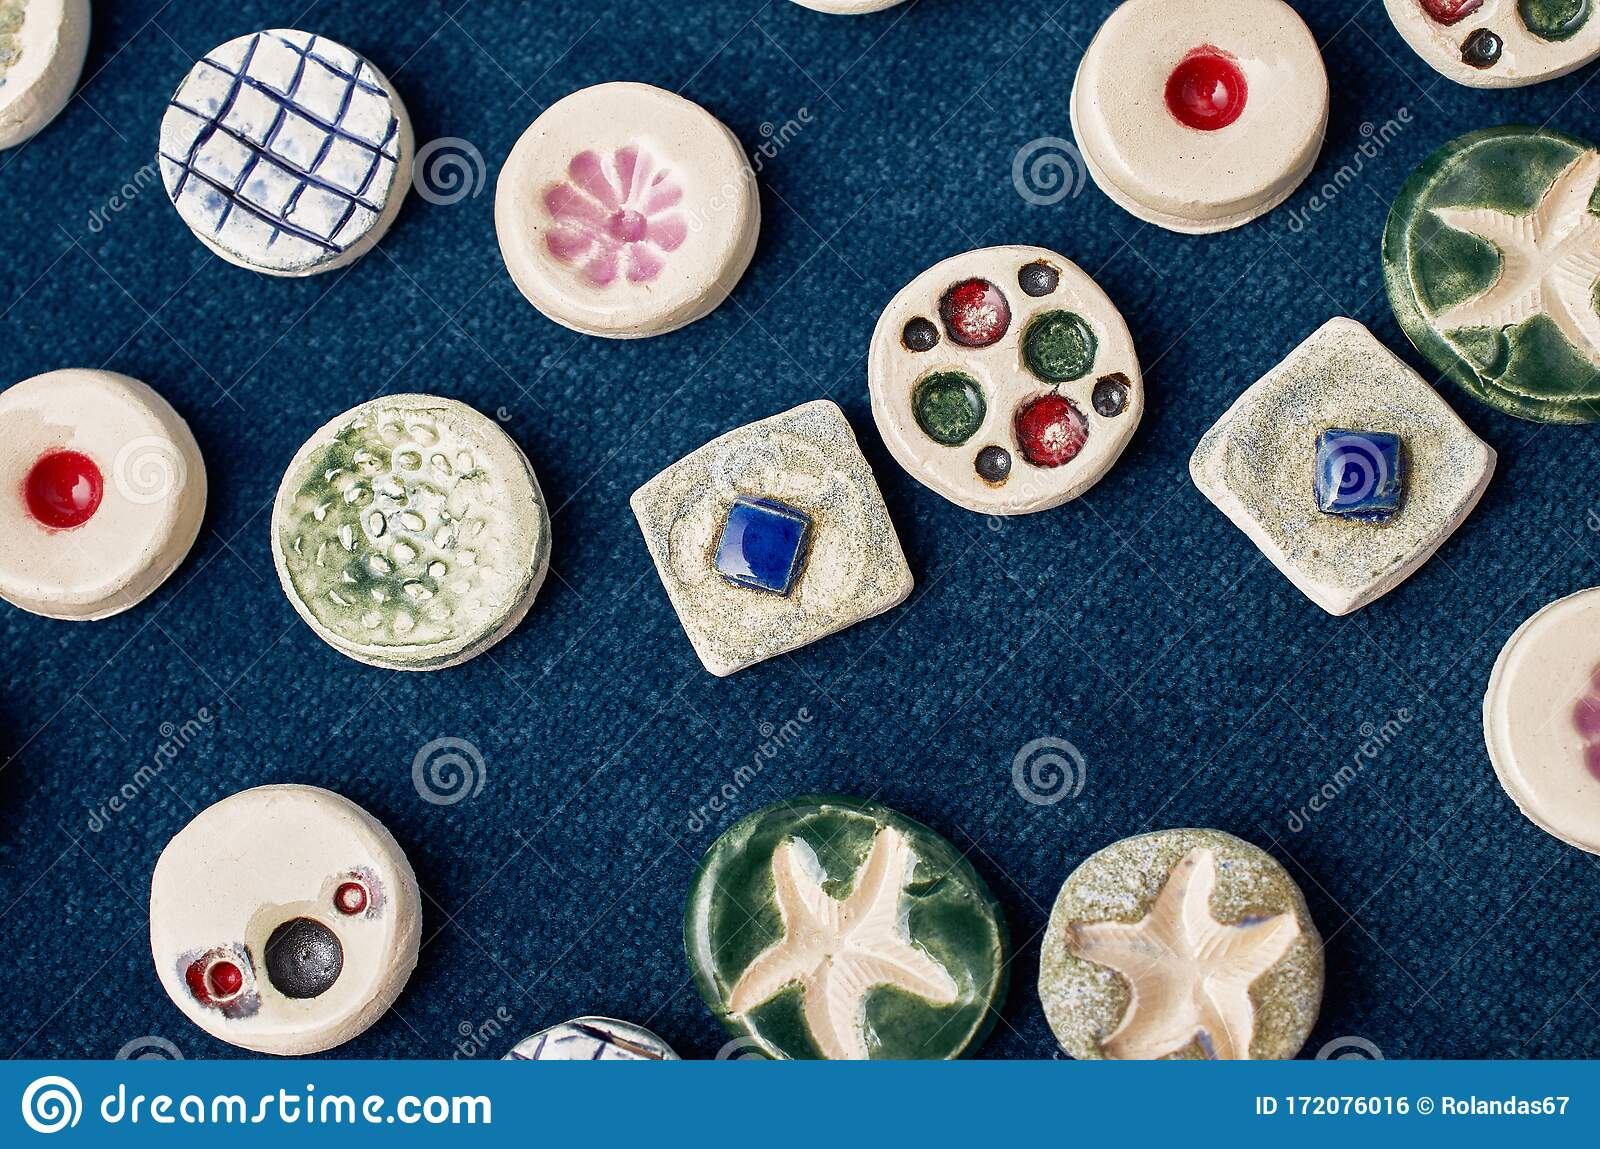 Handmade Ceramic Jewelry On A Blue Denim Surface Stock Photo Image Of Blue Colored 172076016